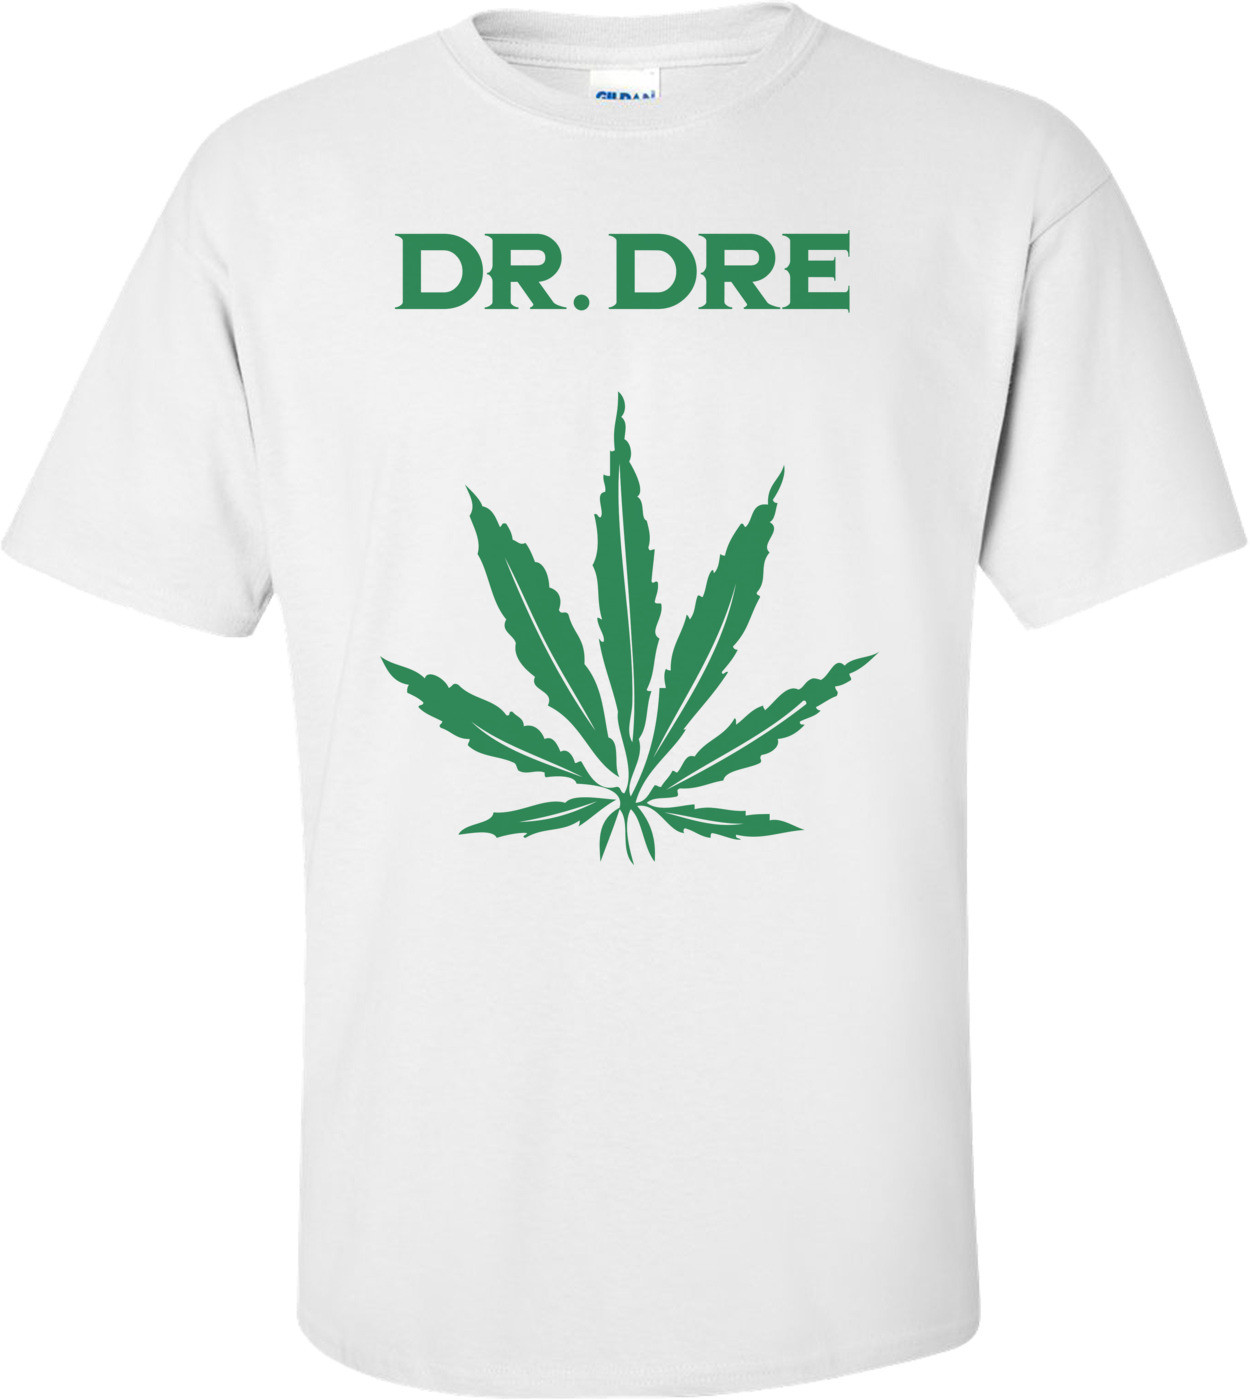 Dr. Dre The Chronic T-shirt